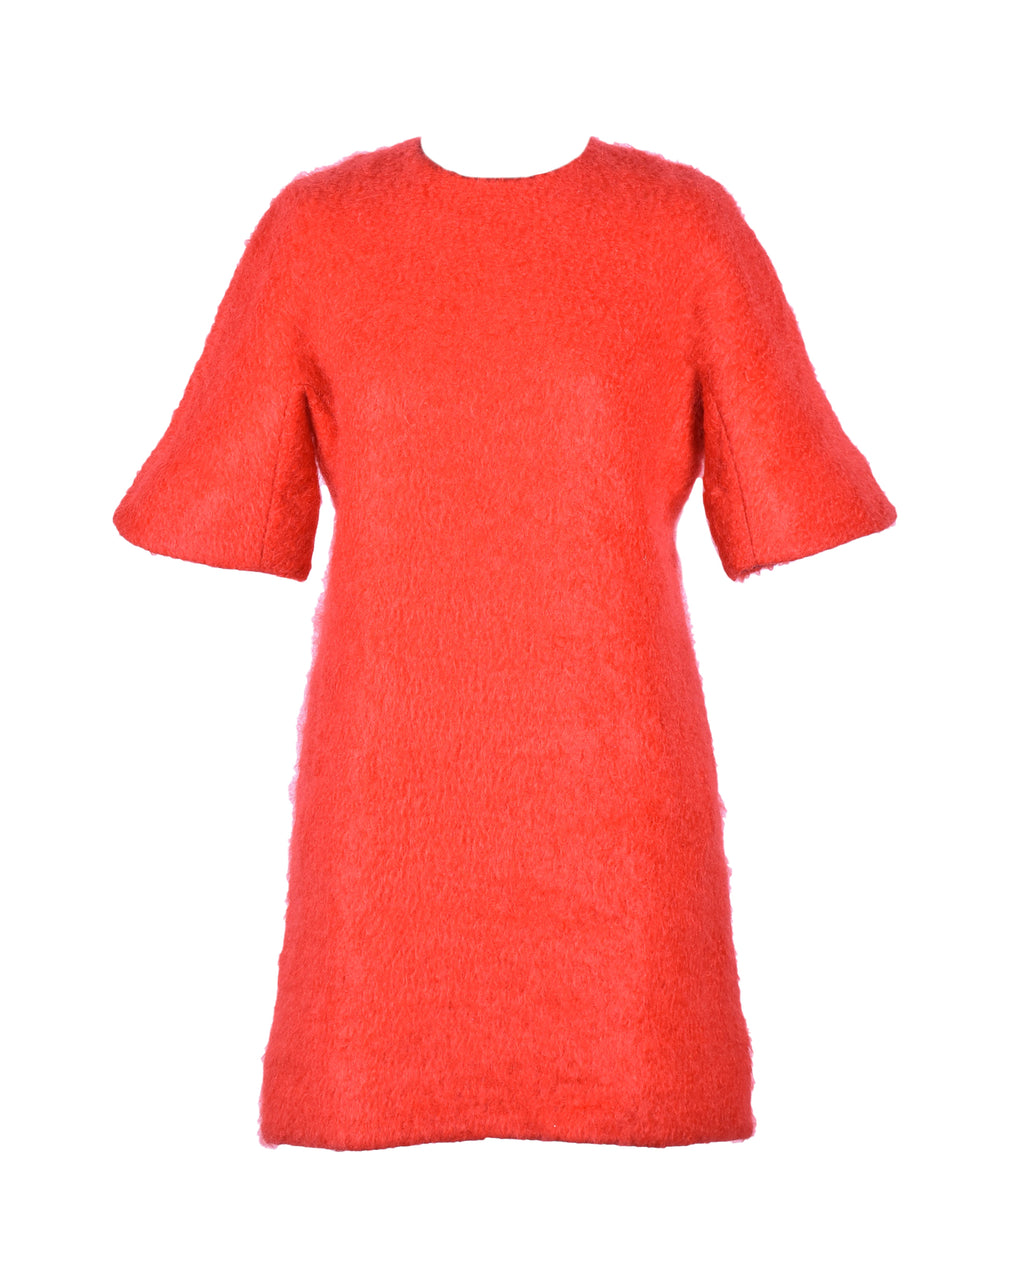 MSGM Red Wool Dress Size 42 (EU)